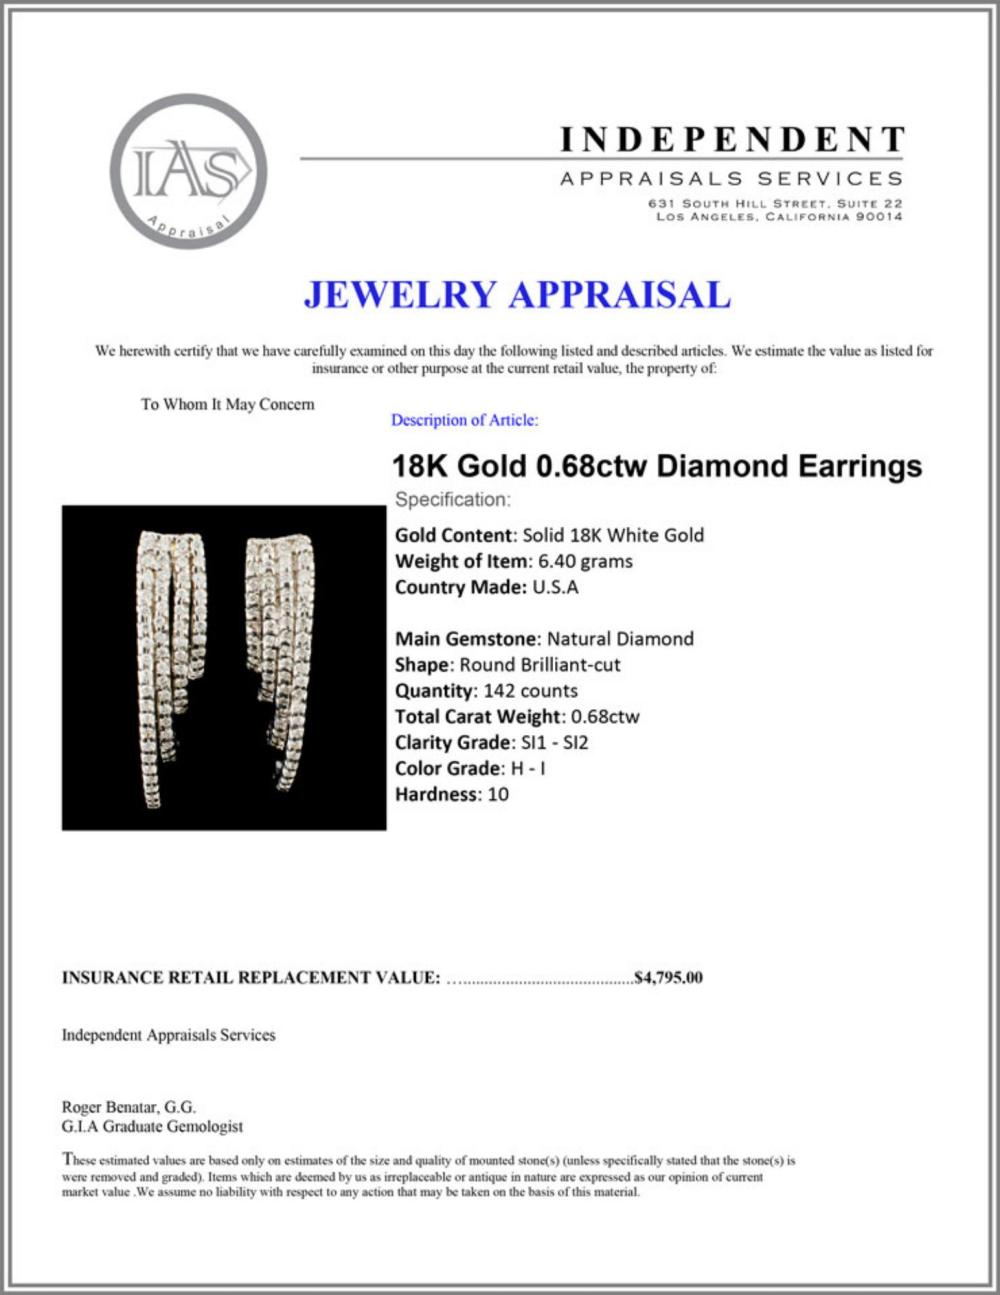 Lot 72: 18K Gold 0.68ctw Diamond Earrings